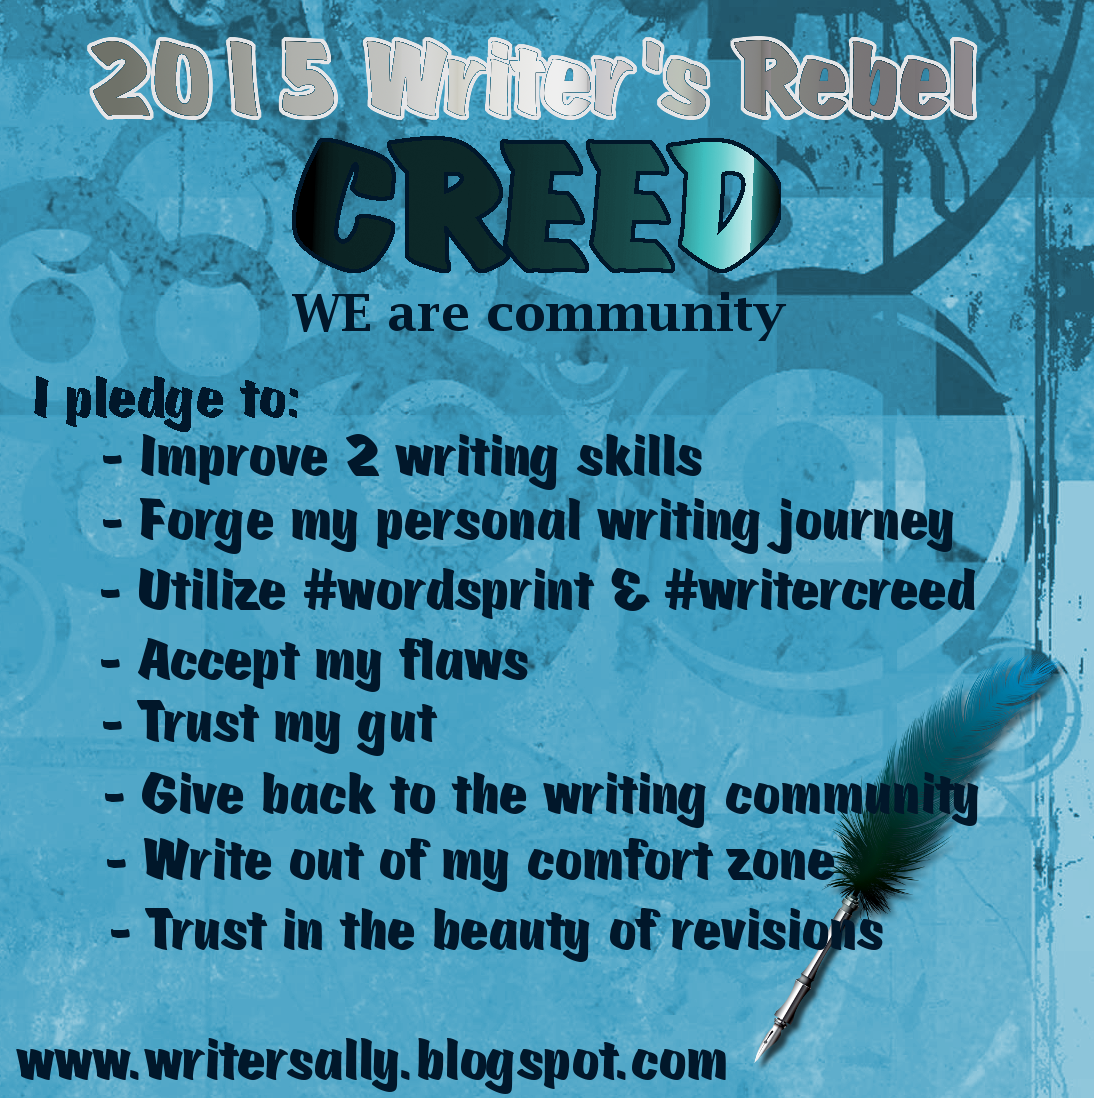 Writer's Rebel Creed 2015